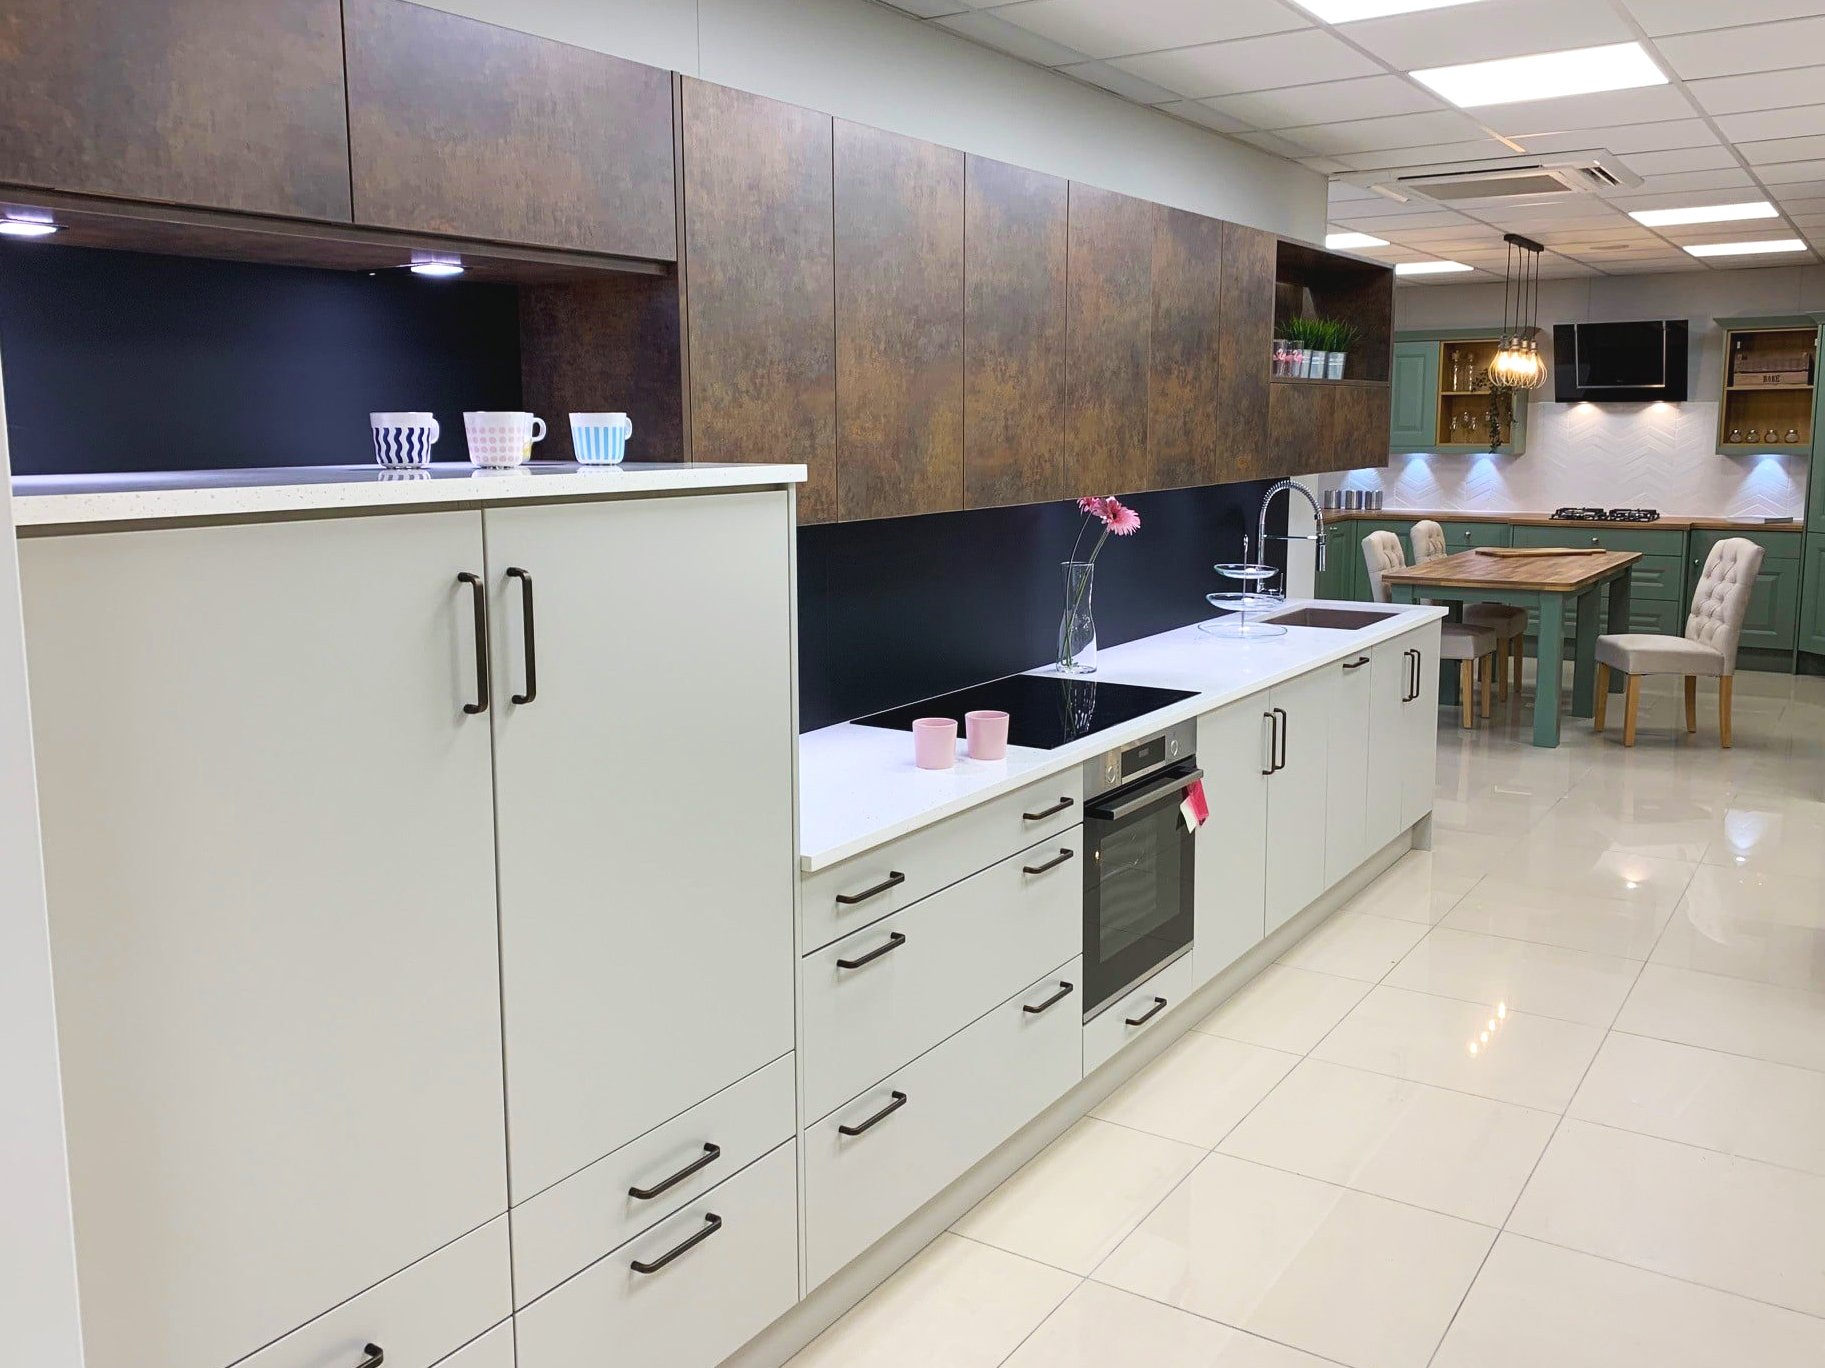 (foreground) Rotpunkt matt kitchen with copper effect units (background) Sheraton Shaker traditional kitchen in Green